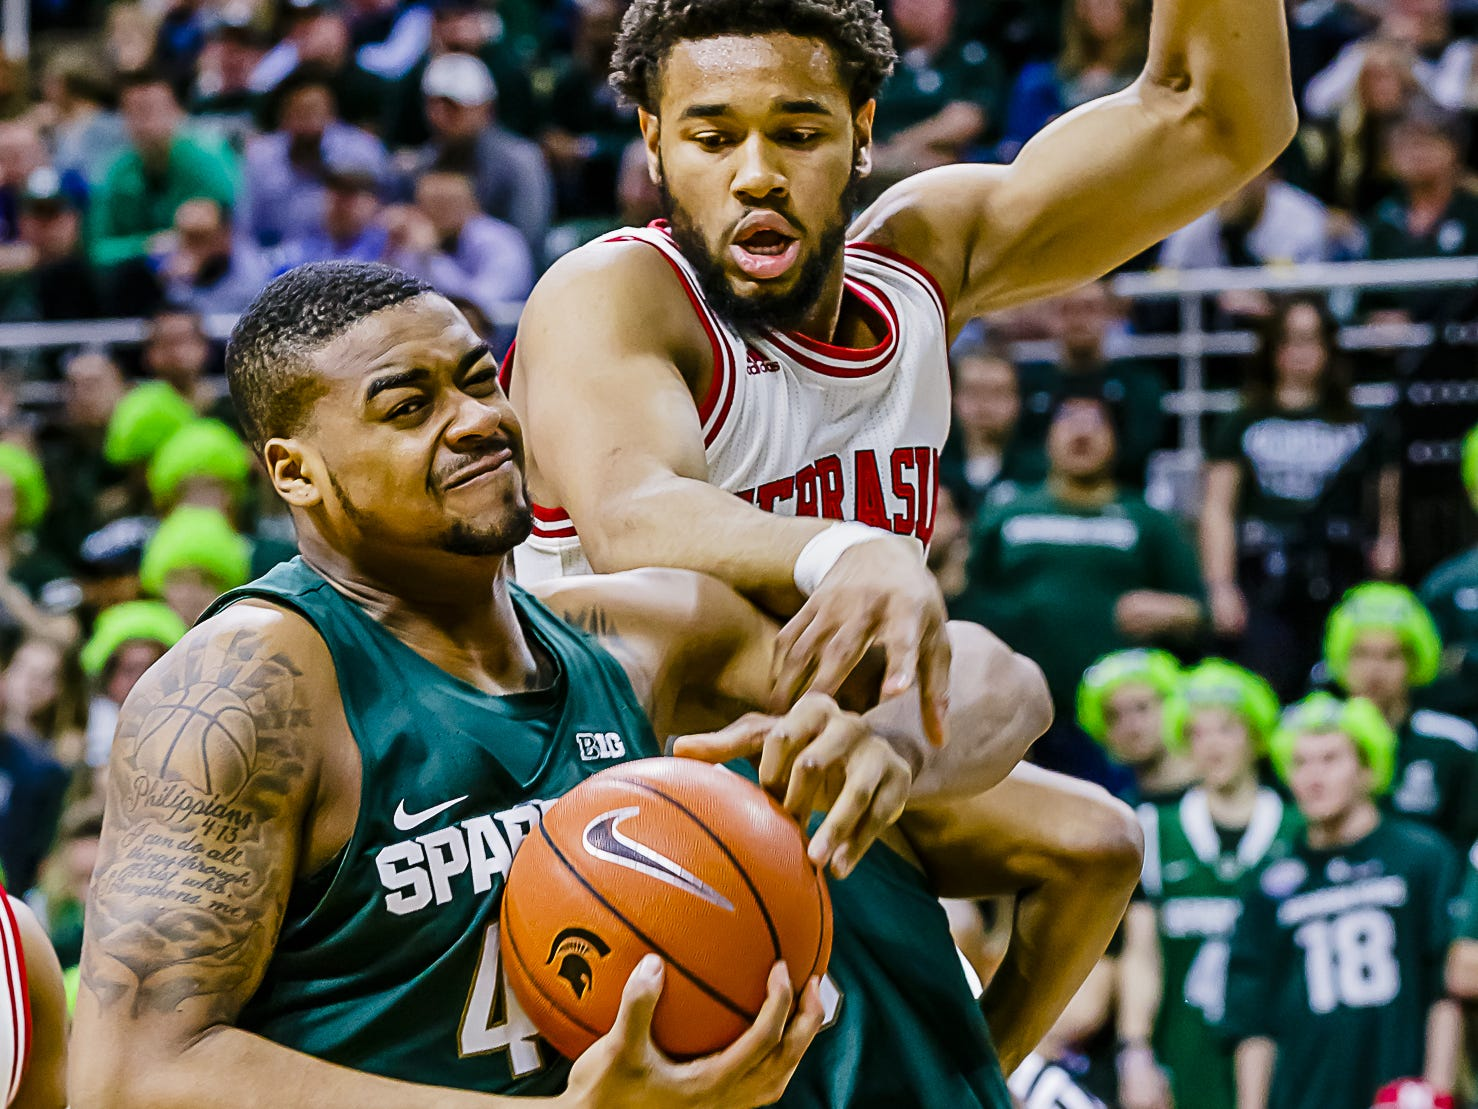 Nick Ward ,left, of MSU grabs a rebound away from Ed Morrow of Nebraska  during their game Thursday February 23, 2017 in East Lansing.  KEVIN W. FOWLER PHOTO